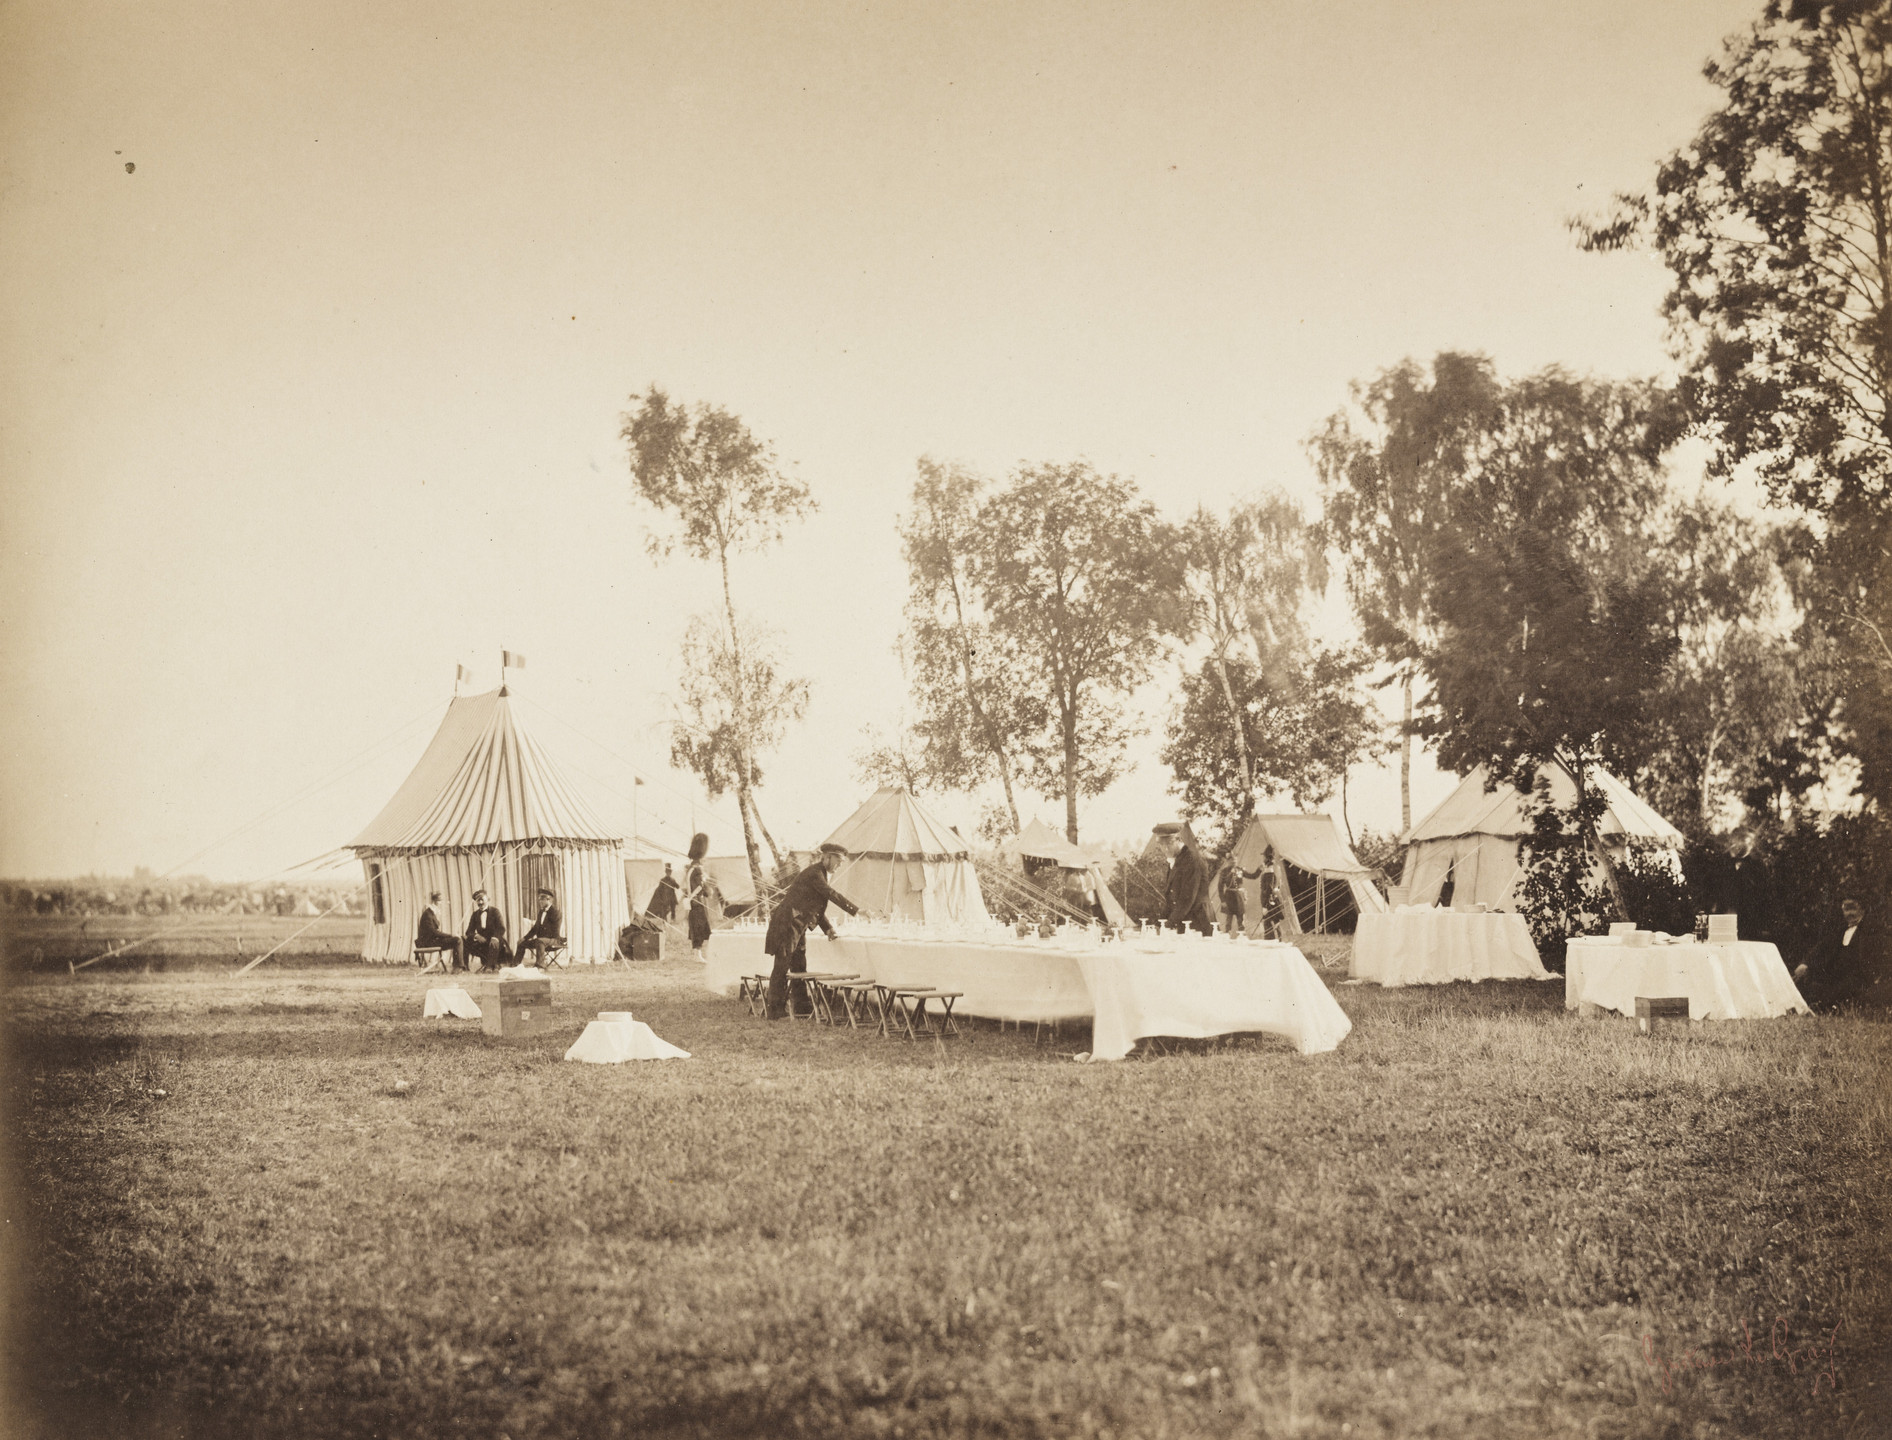 Gustave Le Gray. Setting the Emperor's Table from the album Memories of the Camp de Châlons under General Decaën. 1857